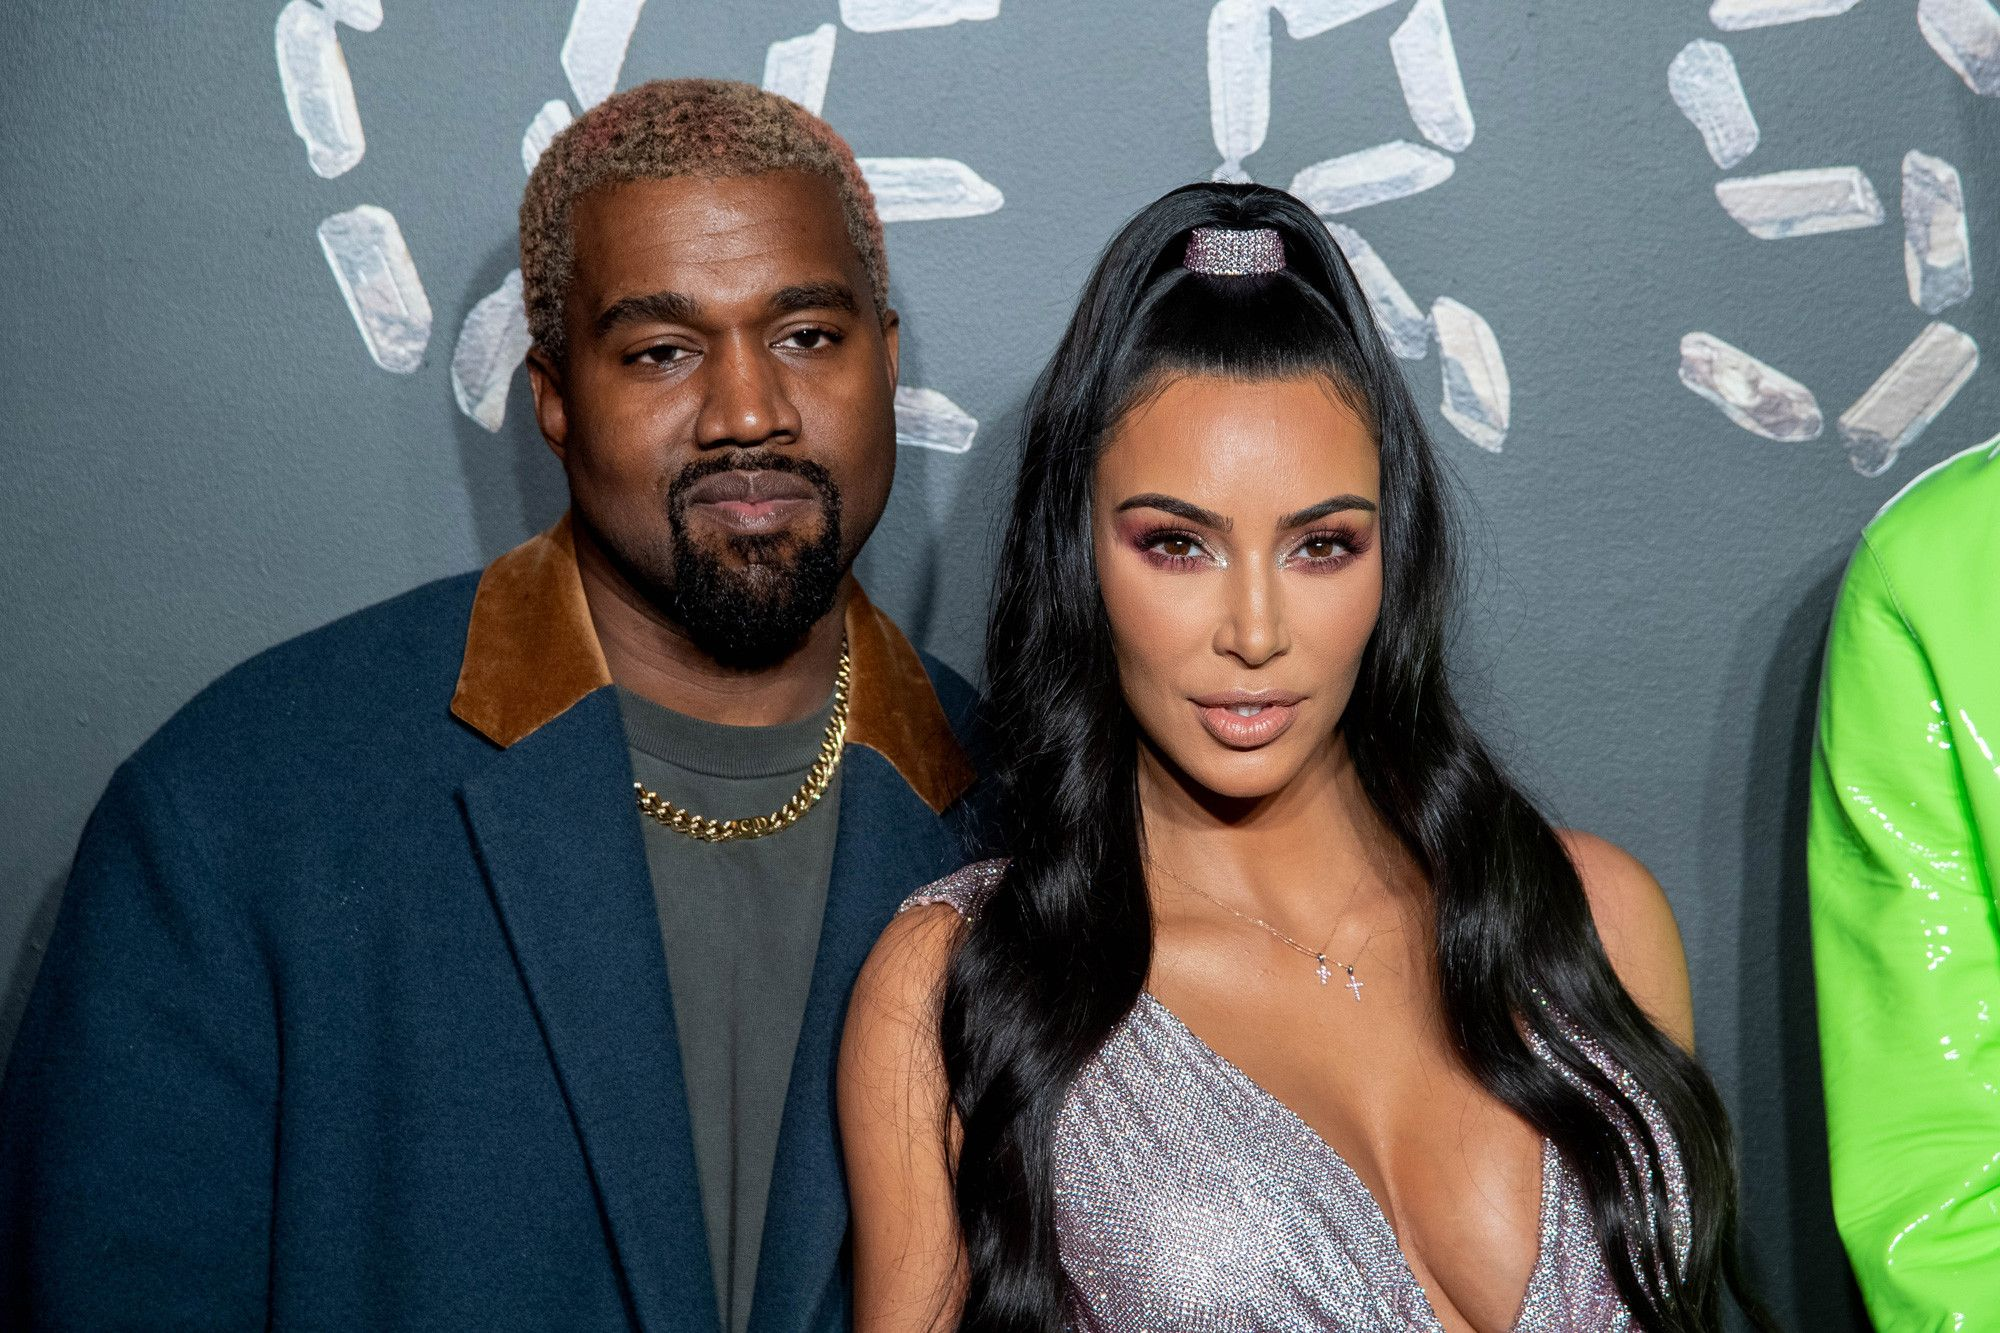 Kim And Kanye Reportedly In Dominican Republic Working On Their Marriage In 2020 Kim And Kanye Kanye West Kim Kardashian